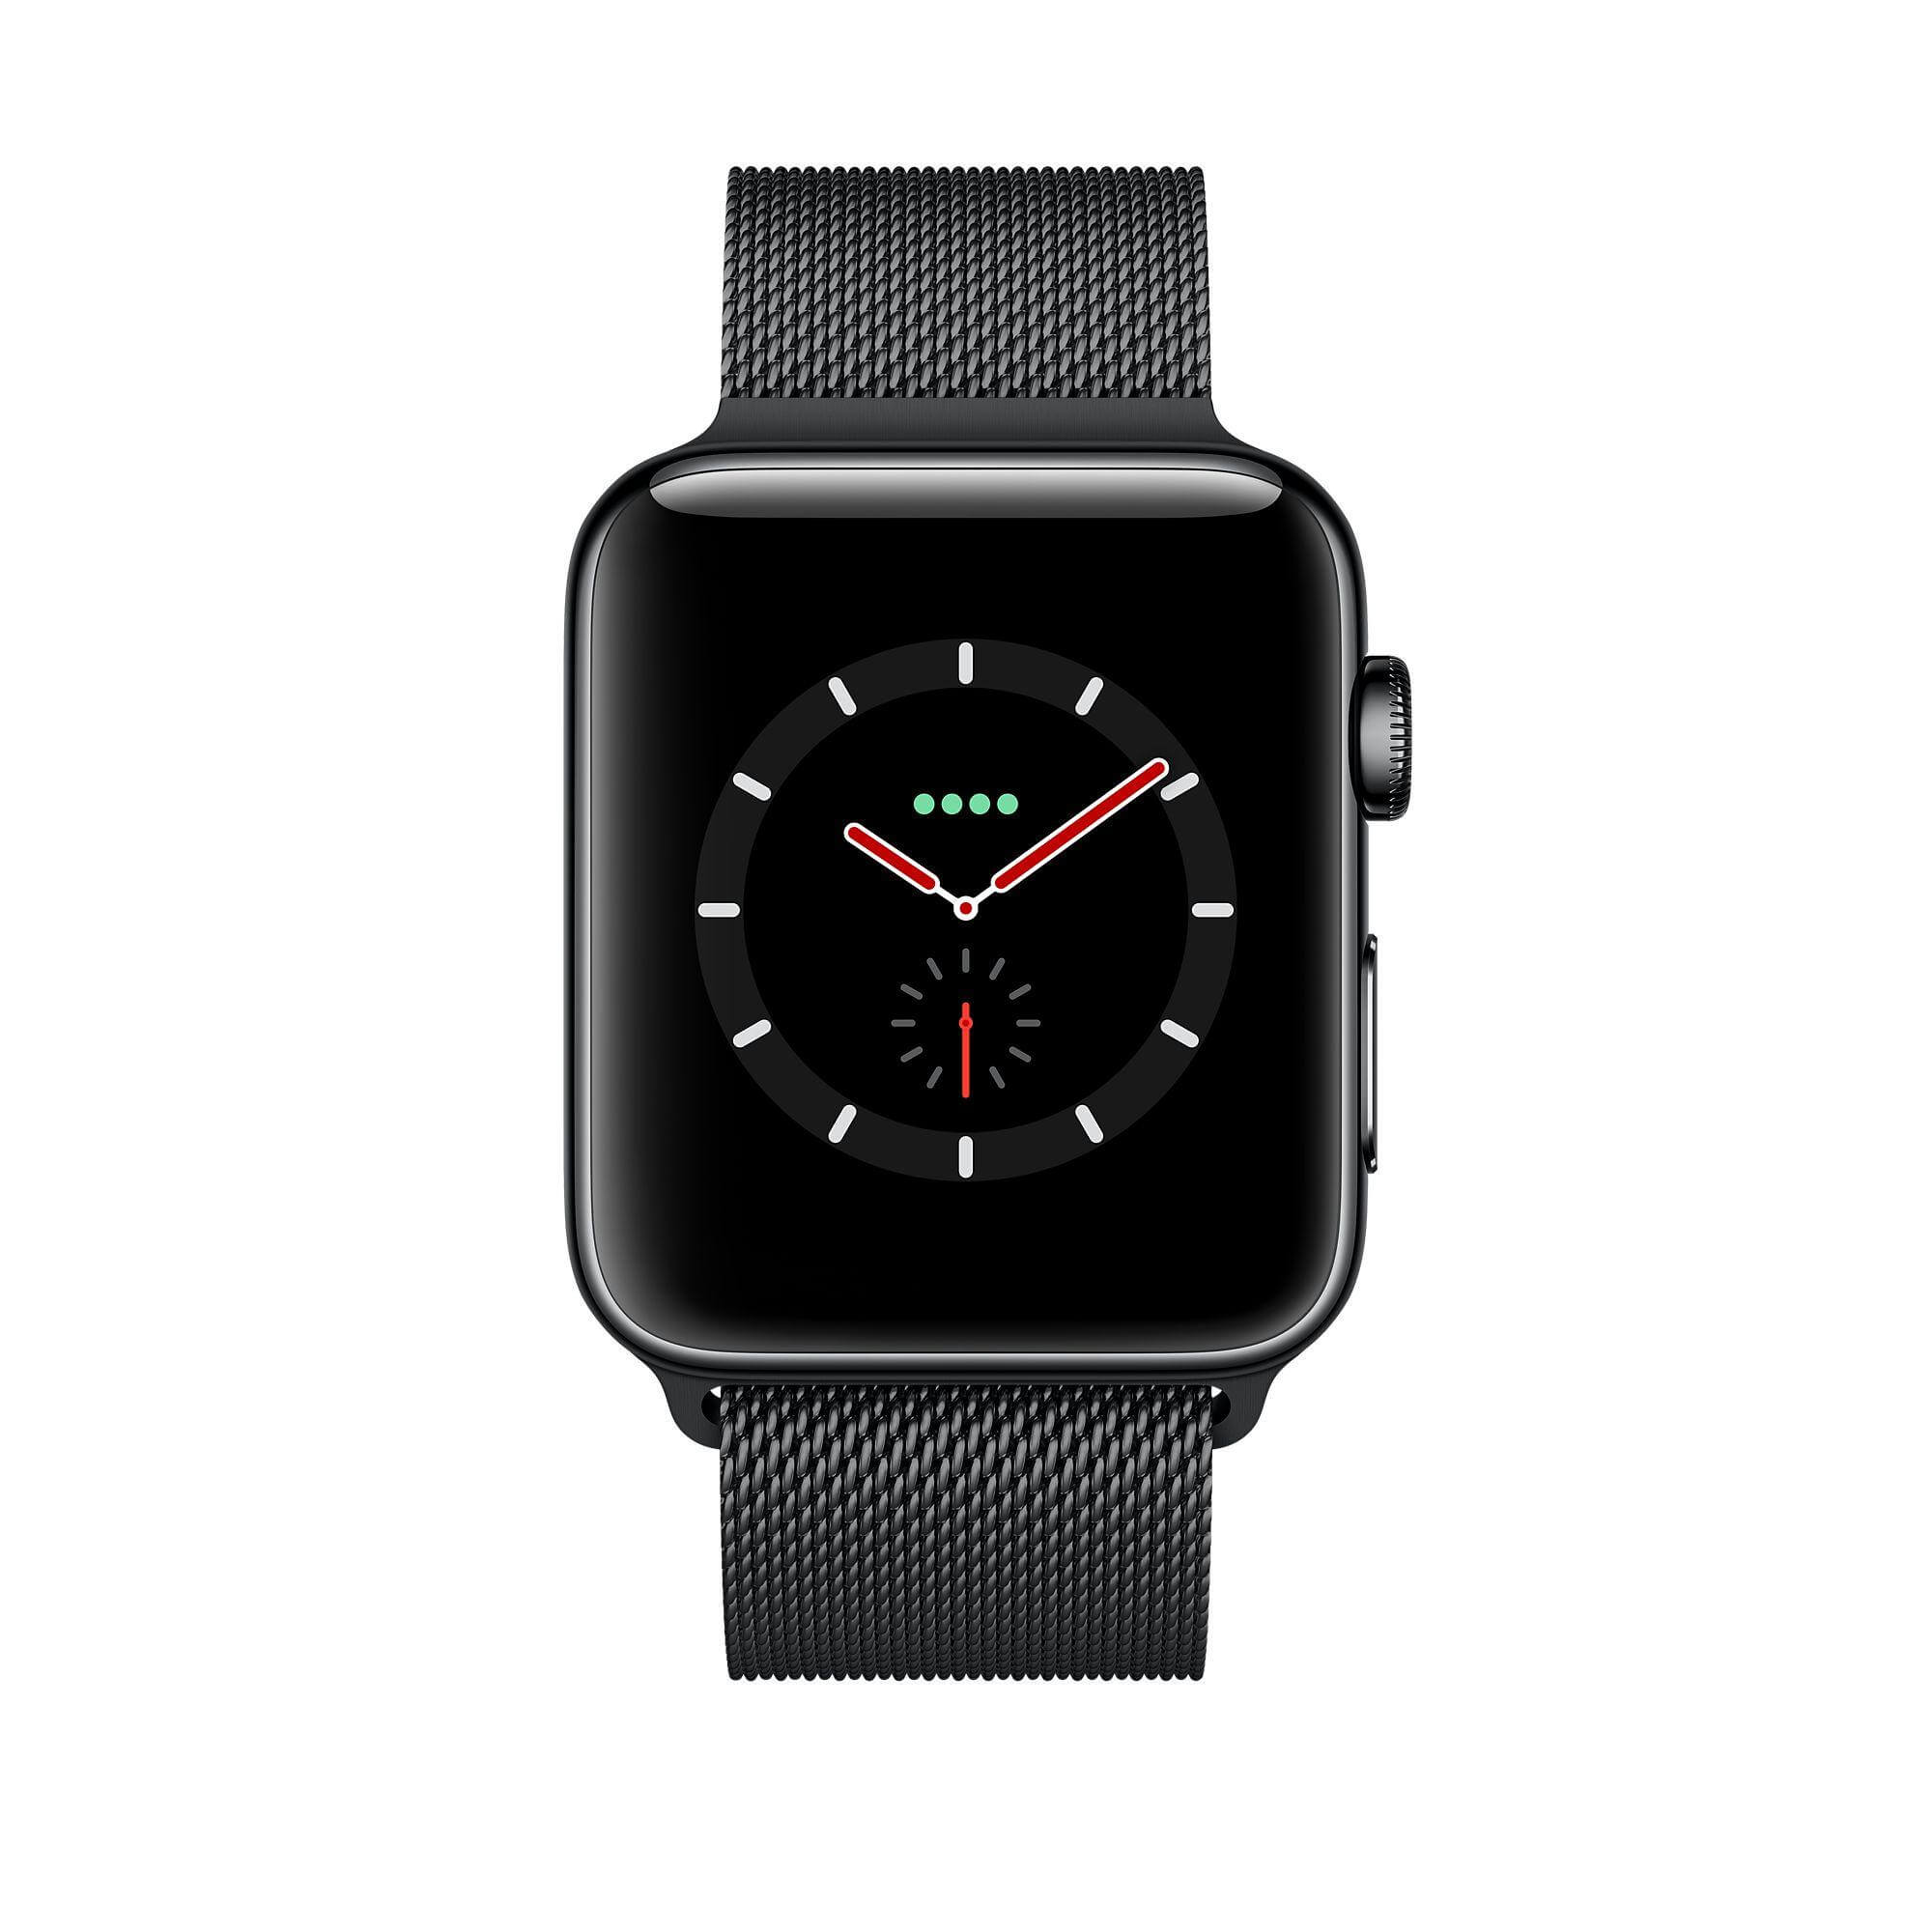 loop comments watch aw the mesh watches grey picturespace black milanese with r series space applewatch